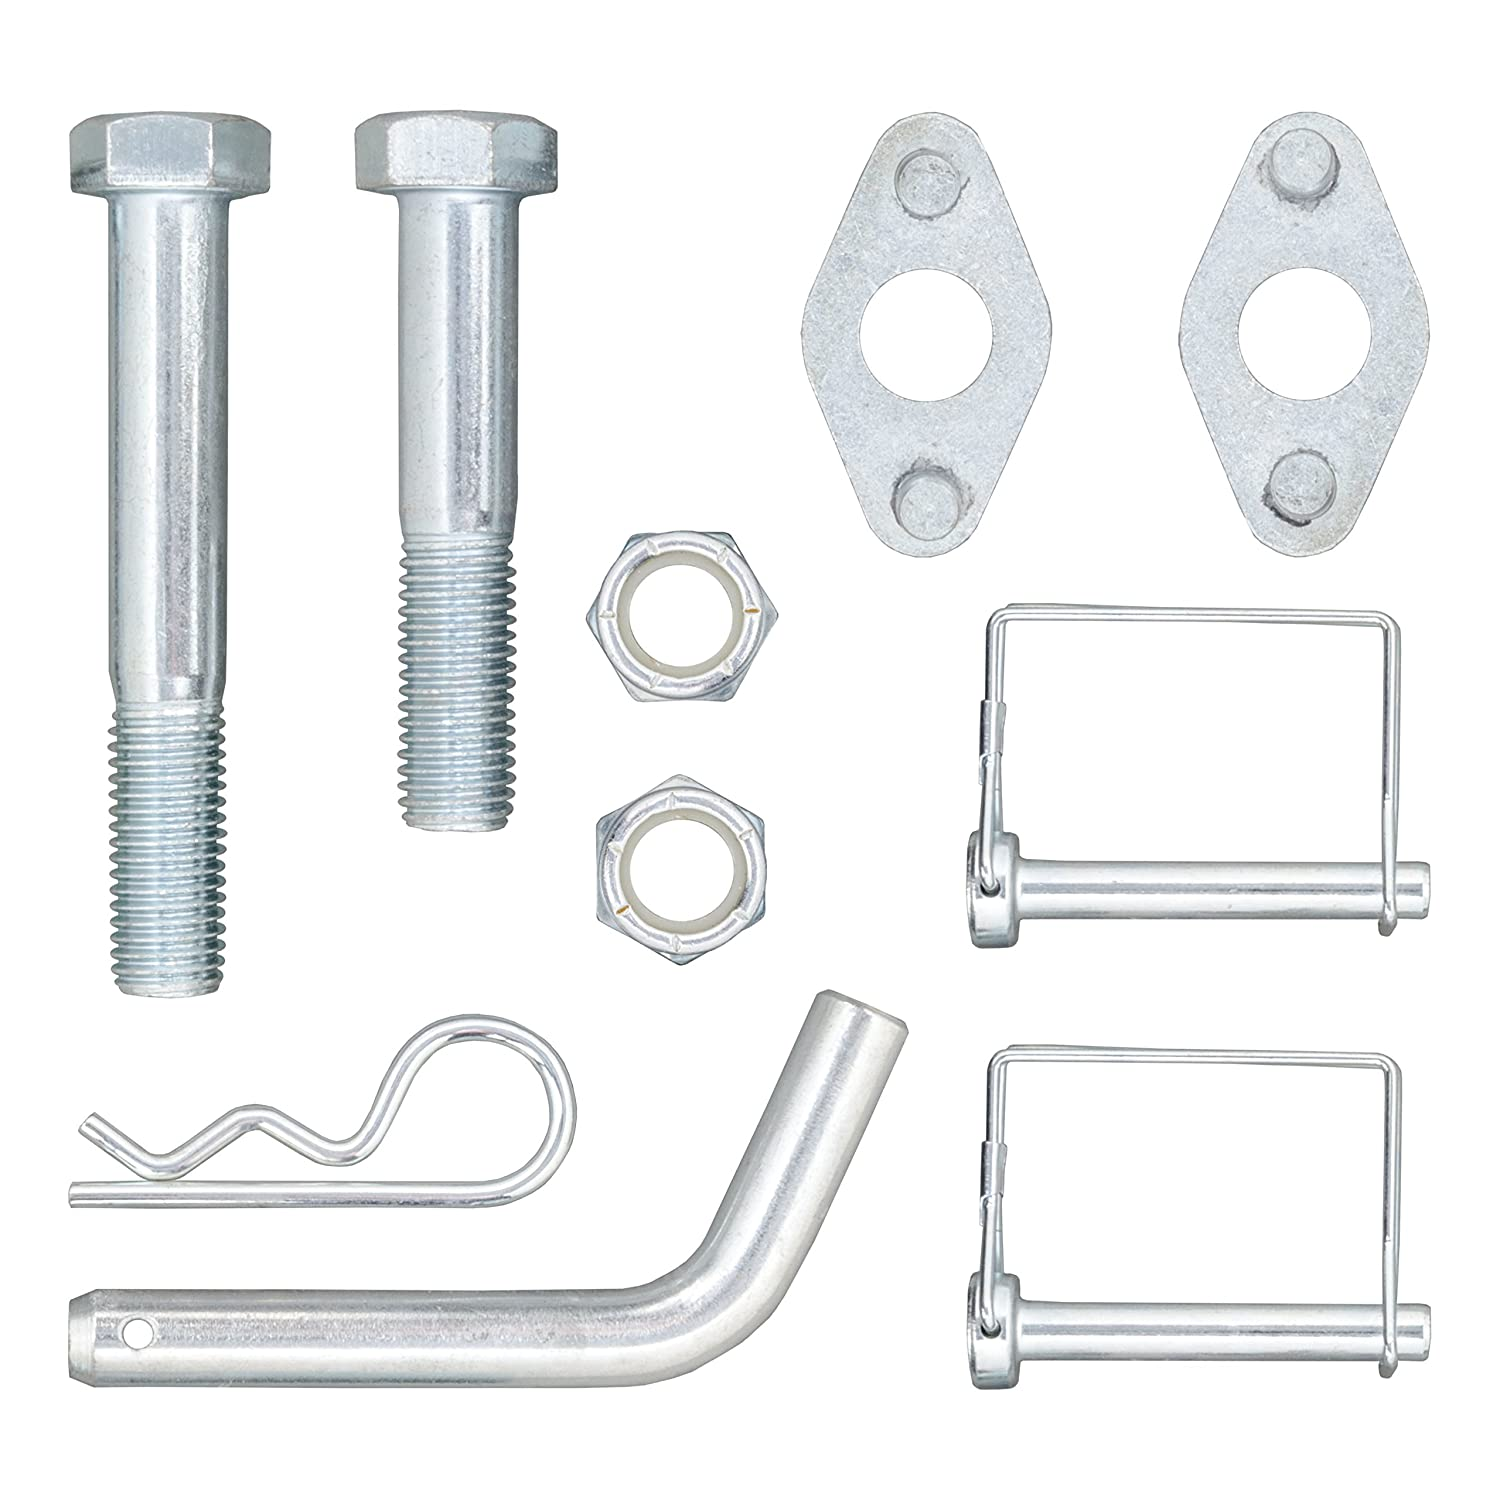 CURT Manufacturing 17550 TruTrack Weight Distribution Hardware Kit, 1 Pack